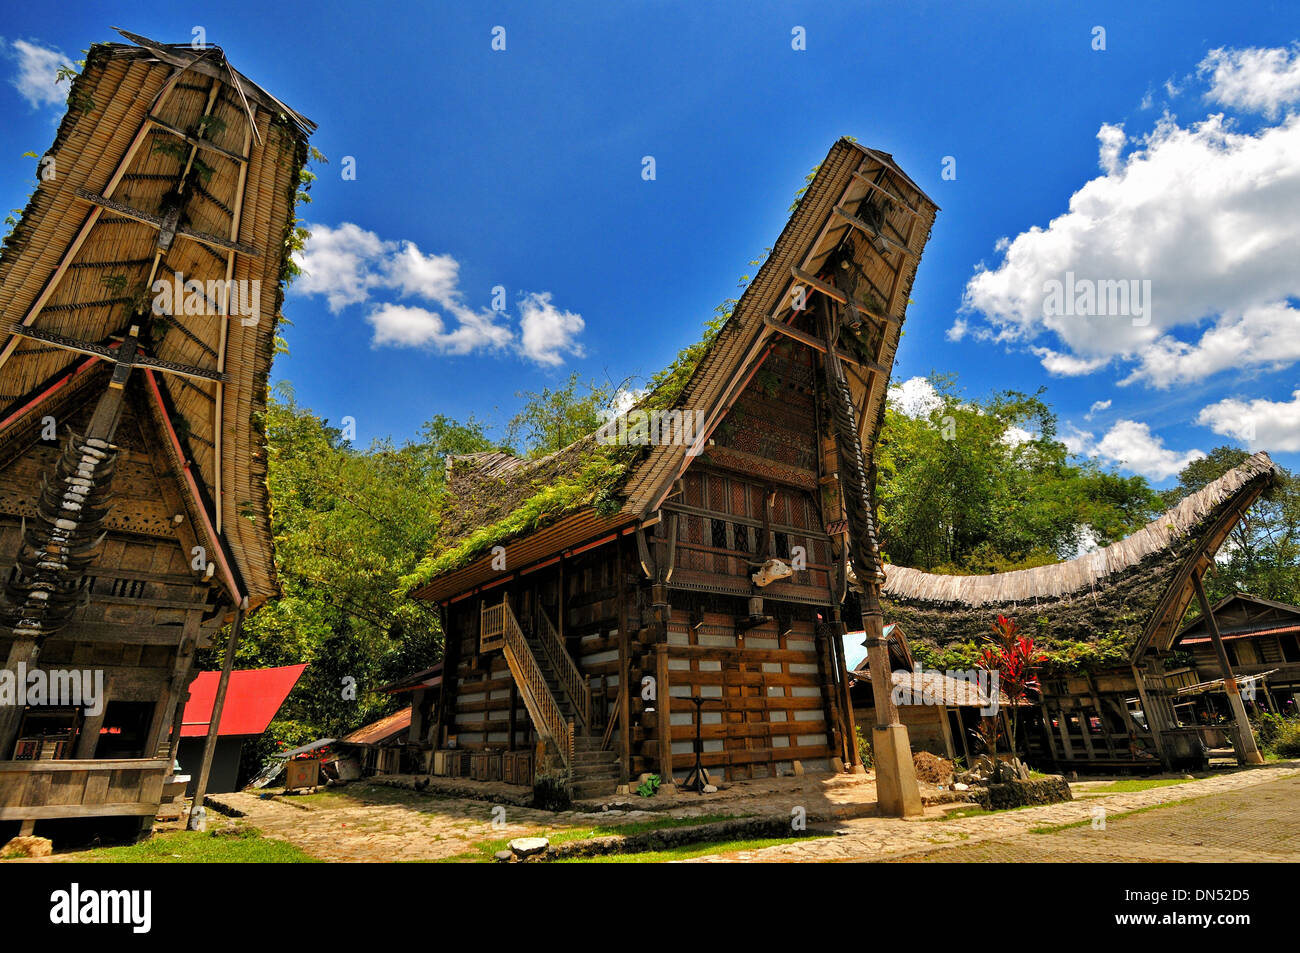 Tongkonan as a museum, South Sulawesi - Stock Image